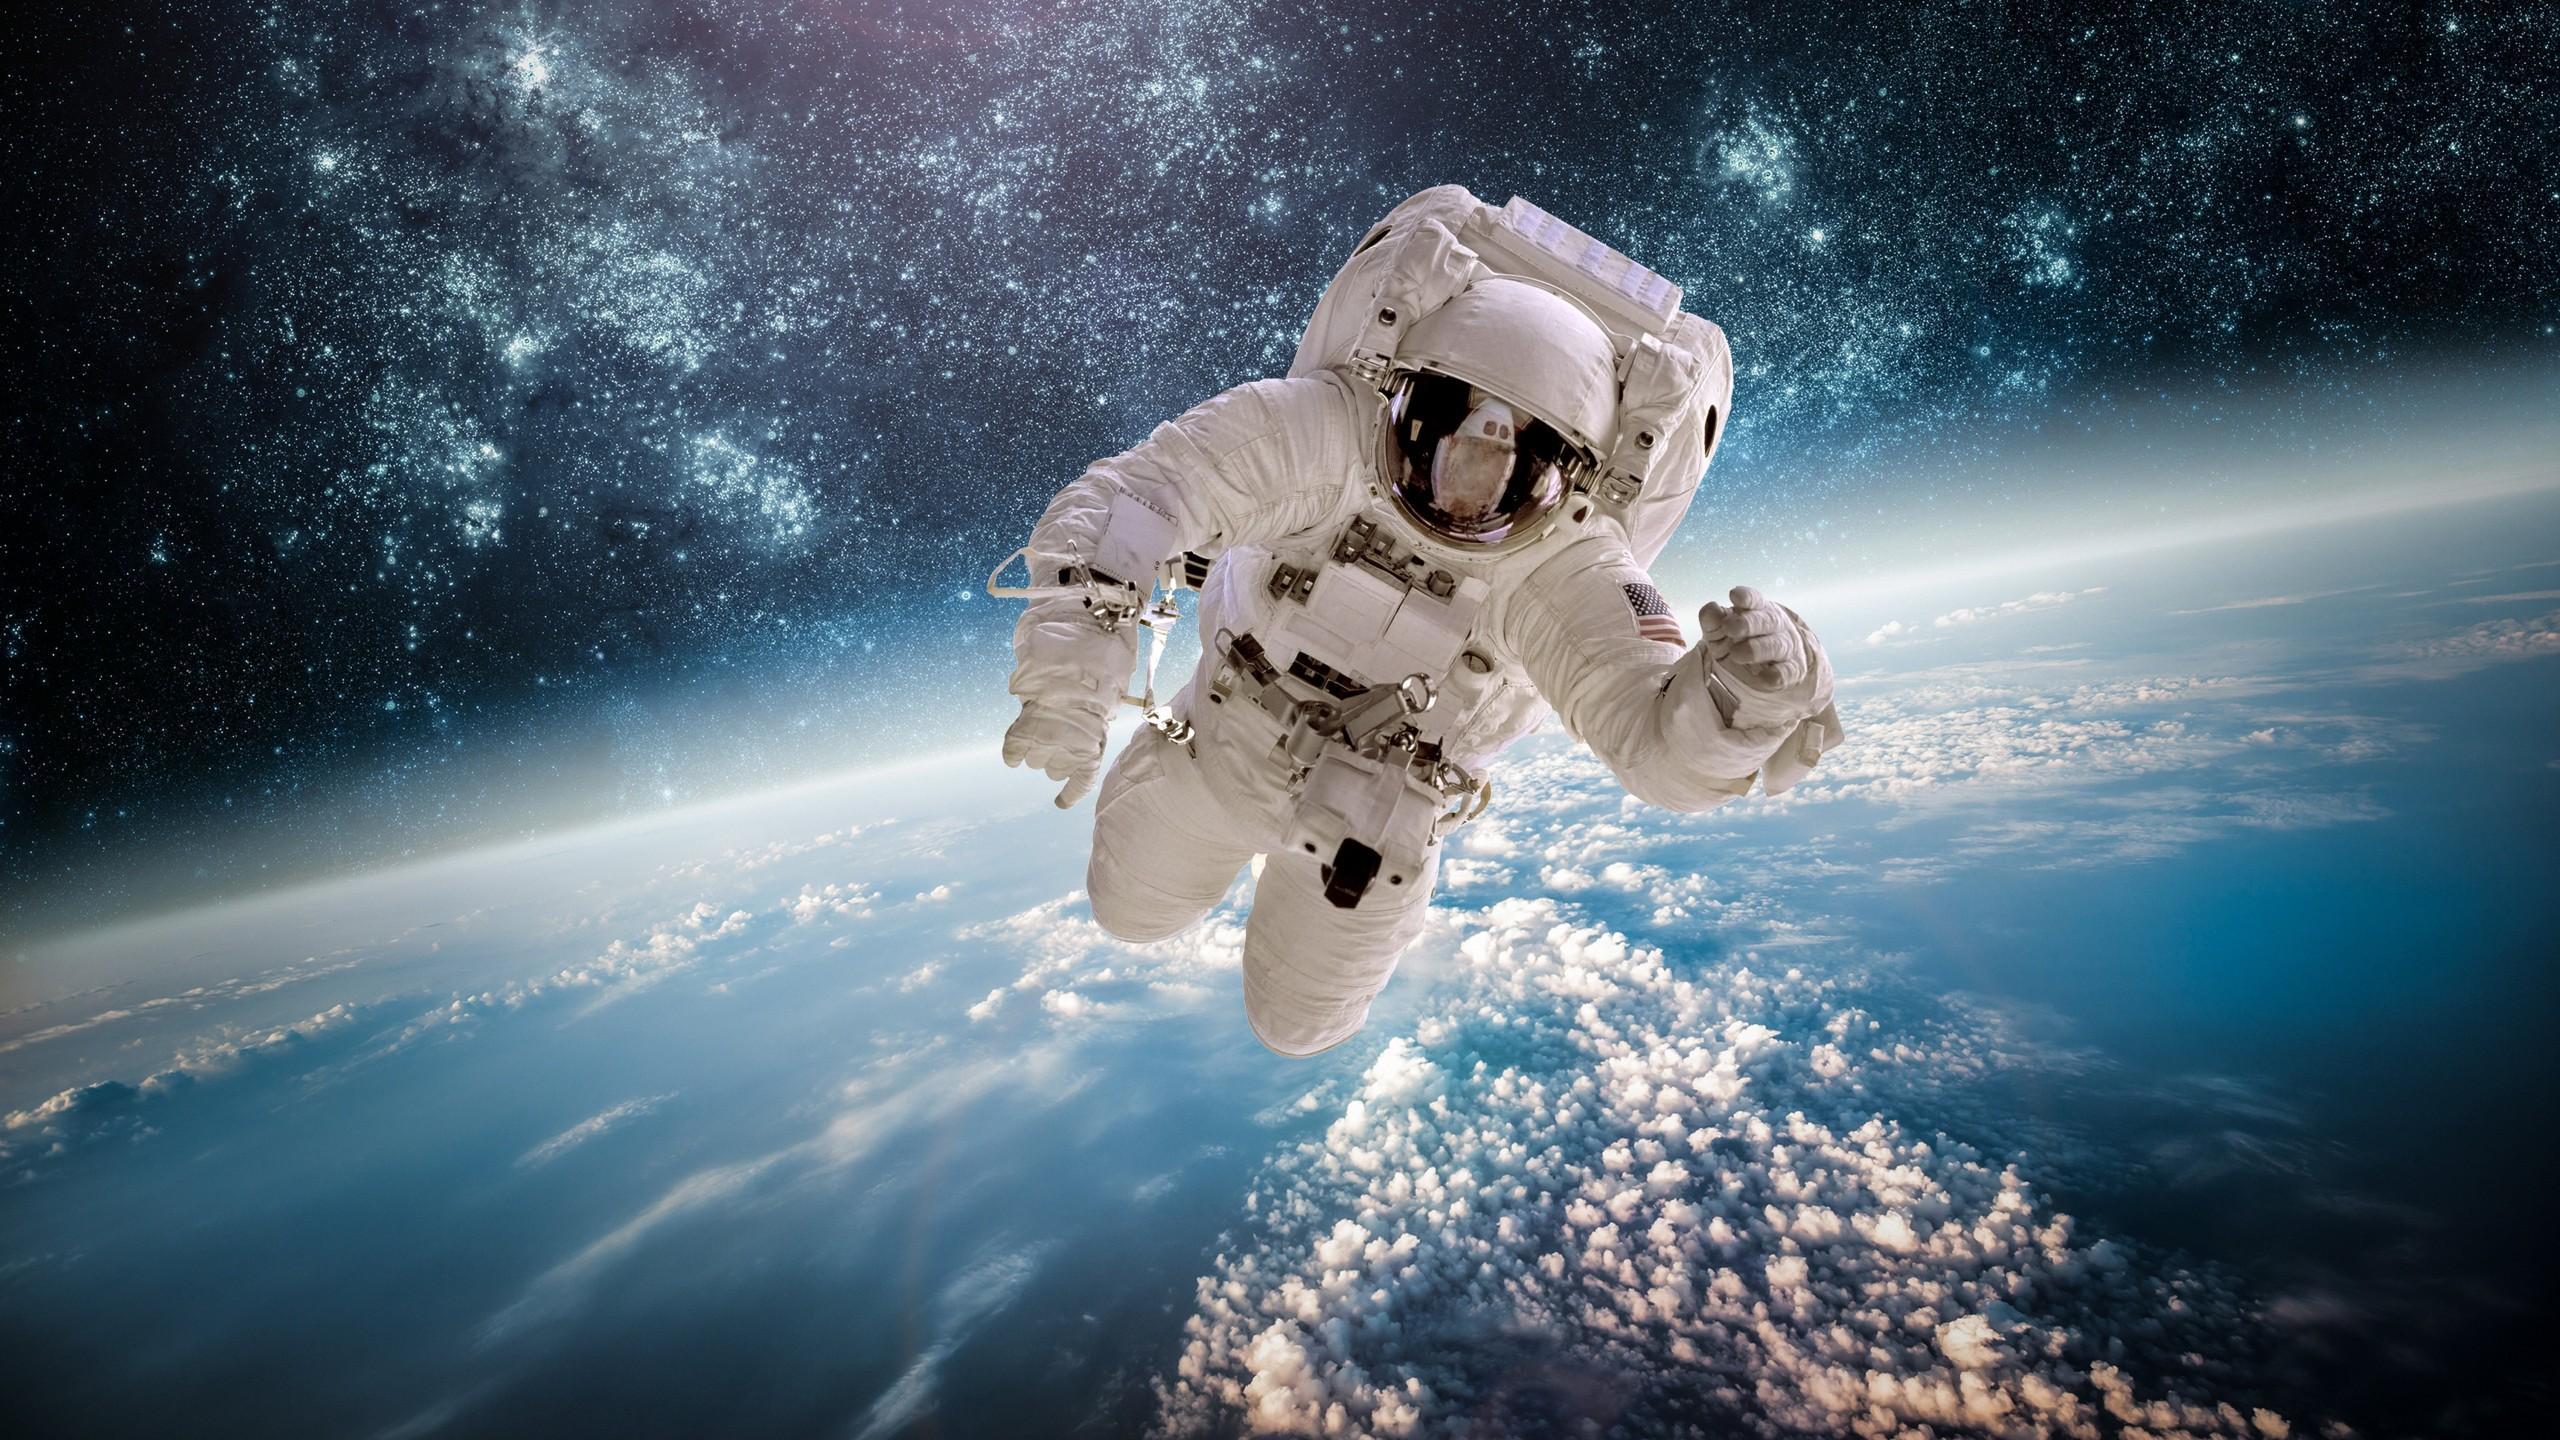 astronaut chilling in space - HD 2220×1248